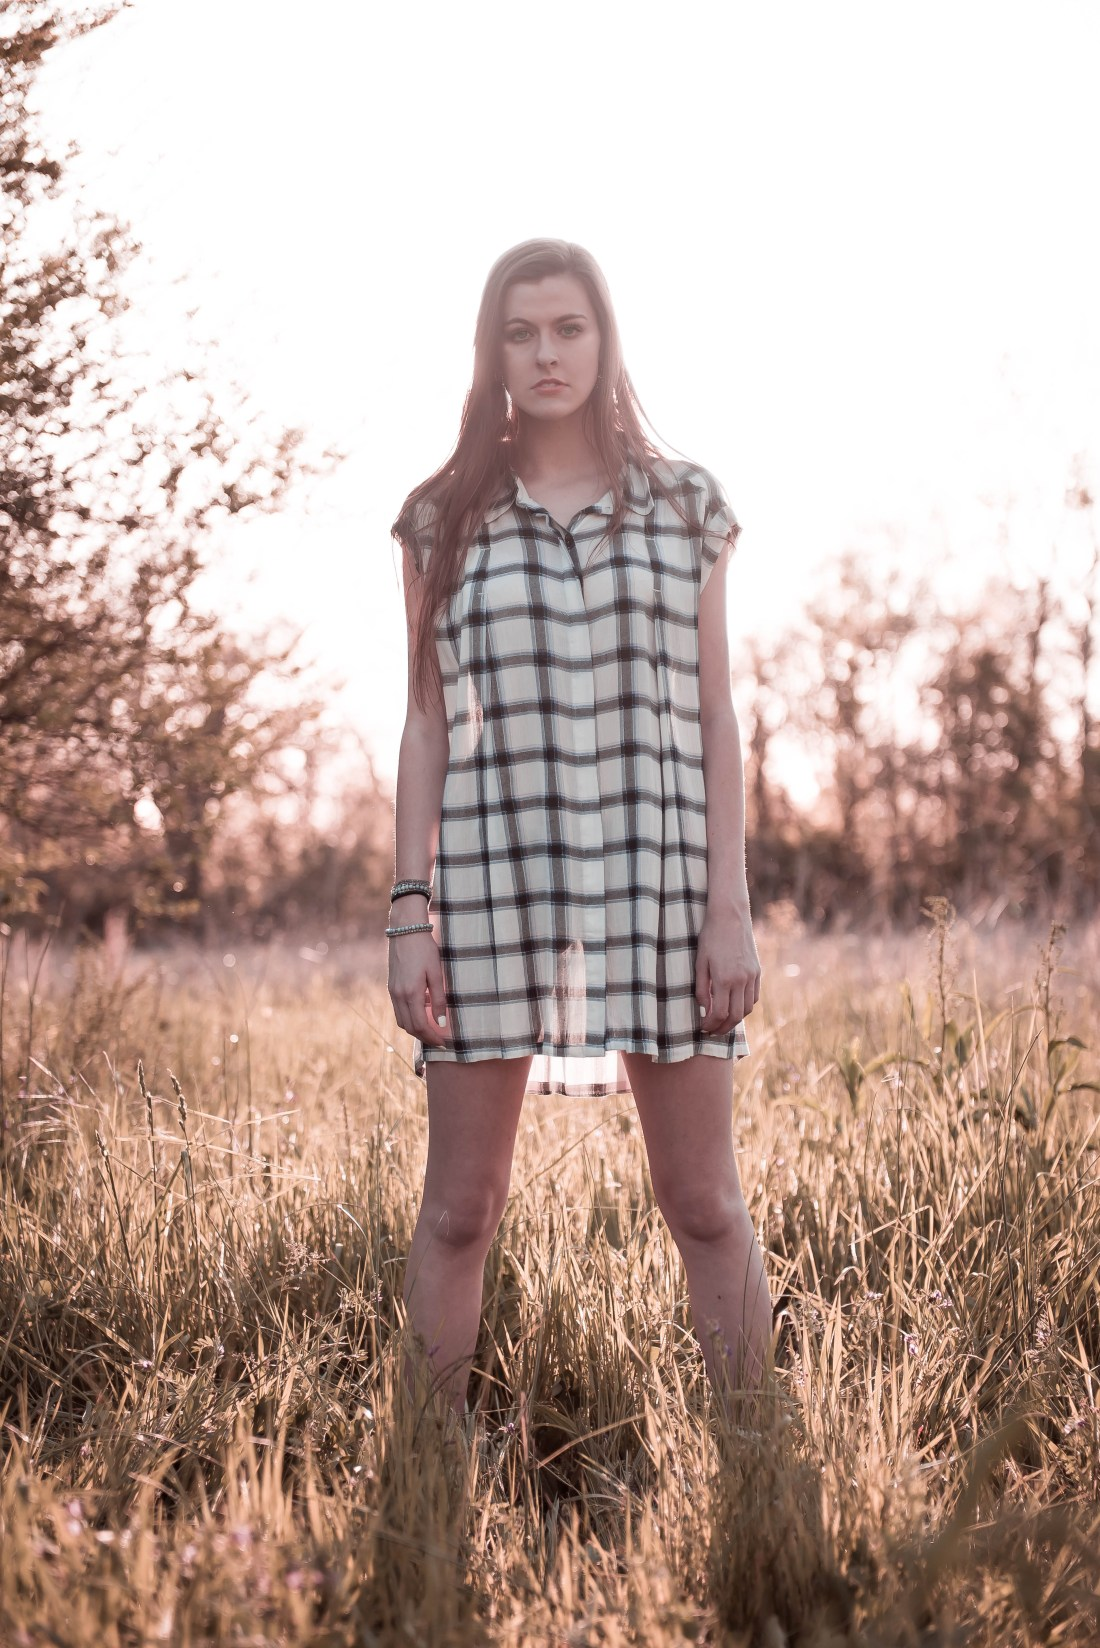 fashion portrait session nolensville tn